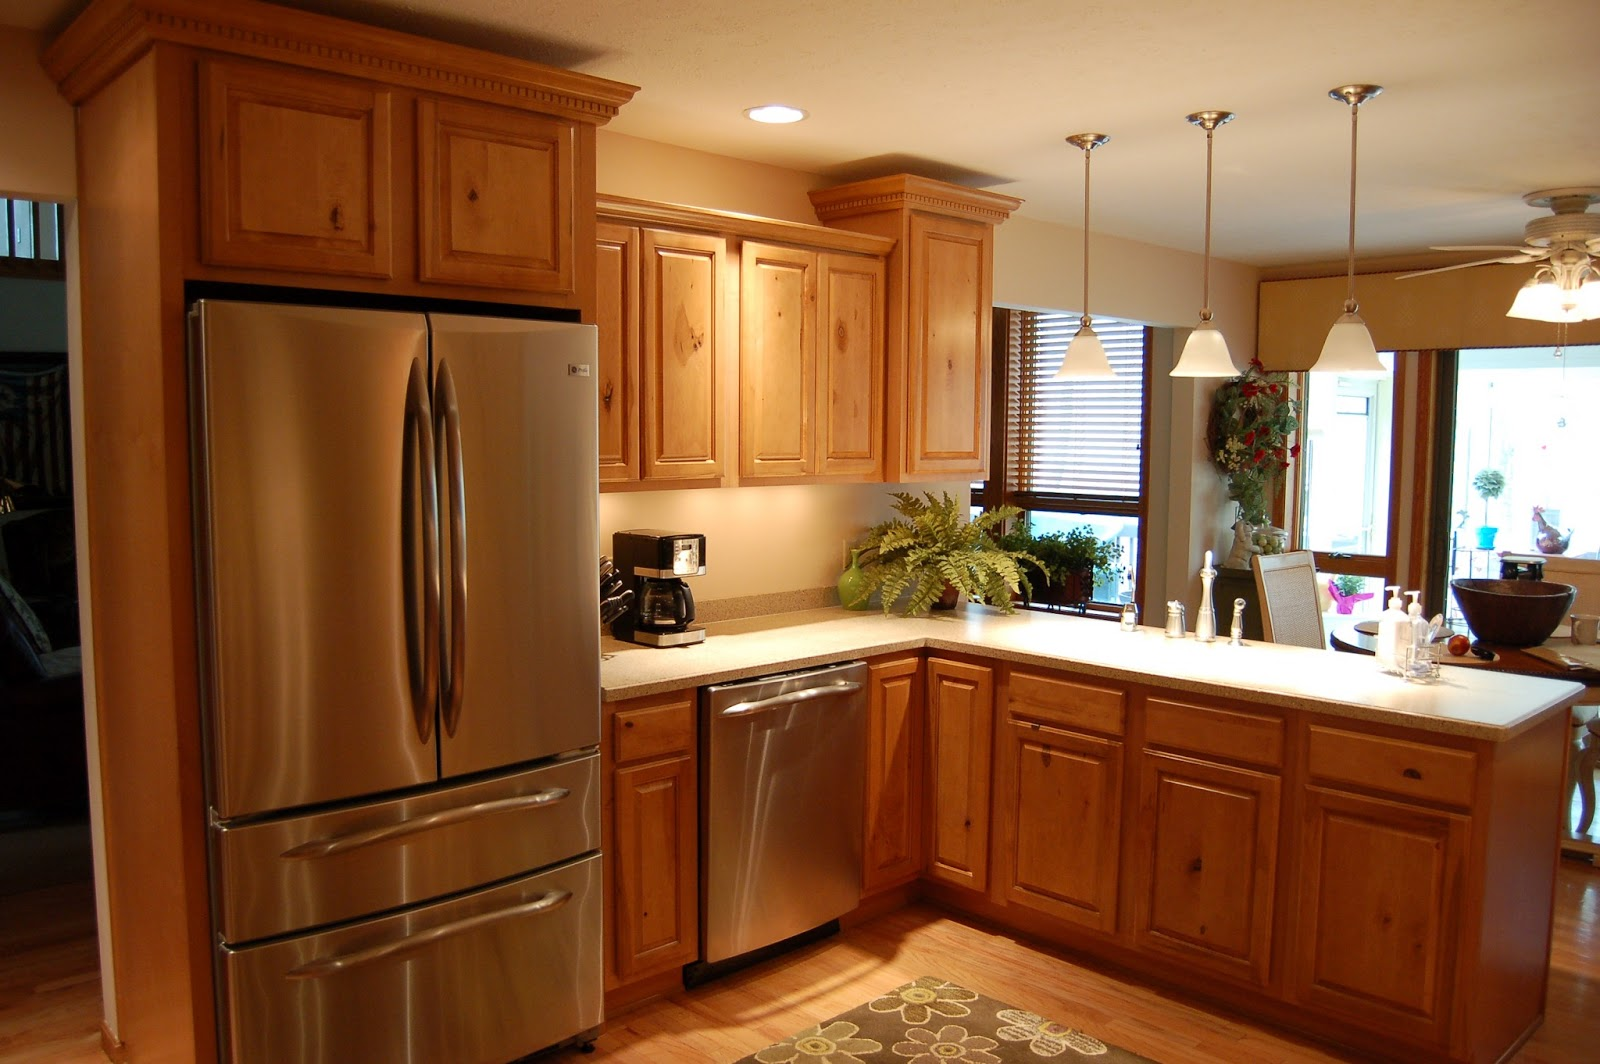 Chicago kitchen remodeling ideas kitchen remodeling chicago - Remodeling kitchen ideas ...